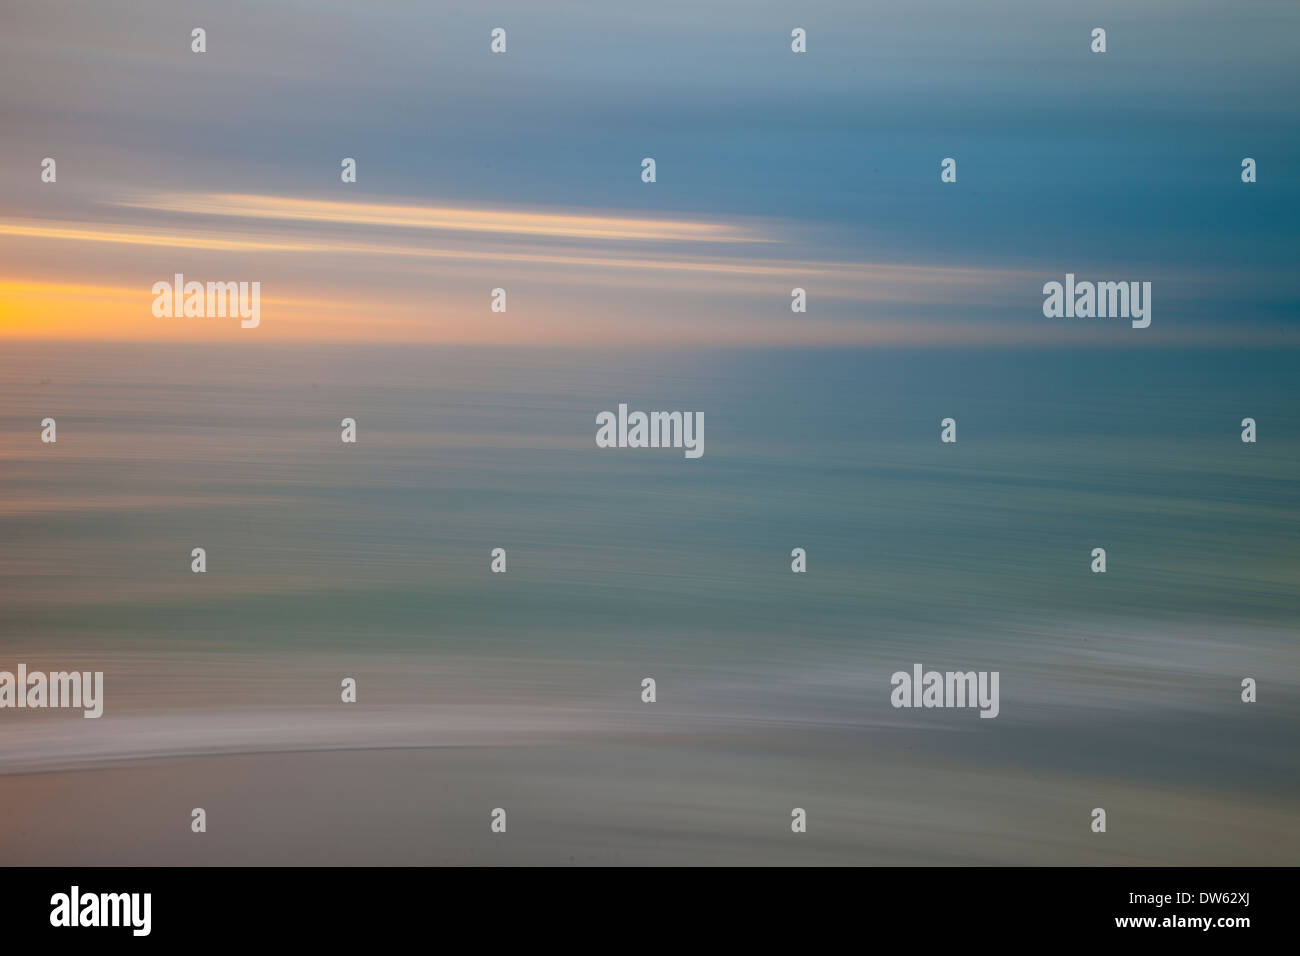 Florida Beach Impression, Motion Blur and abstract - Stock Image